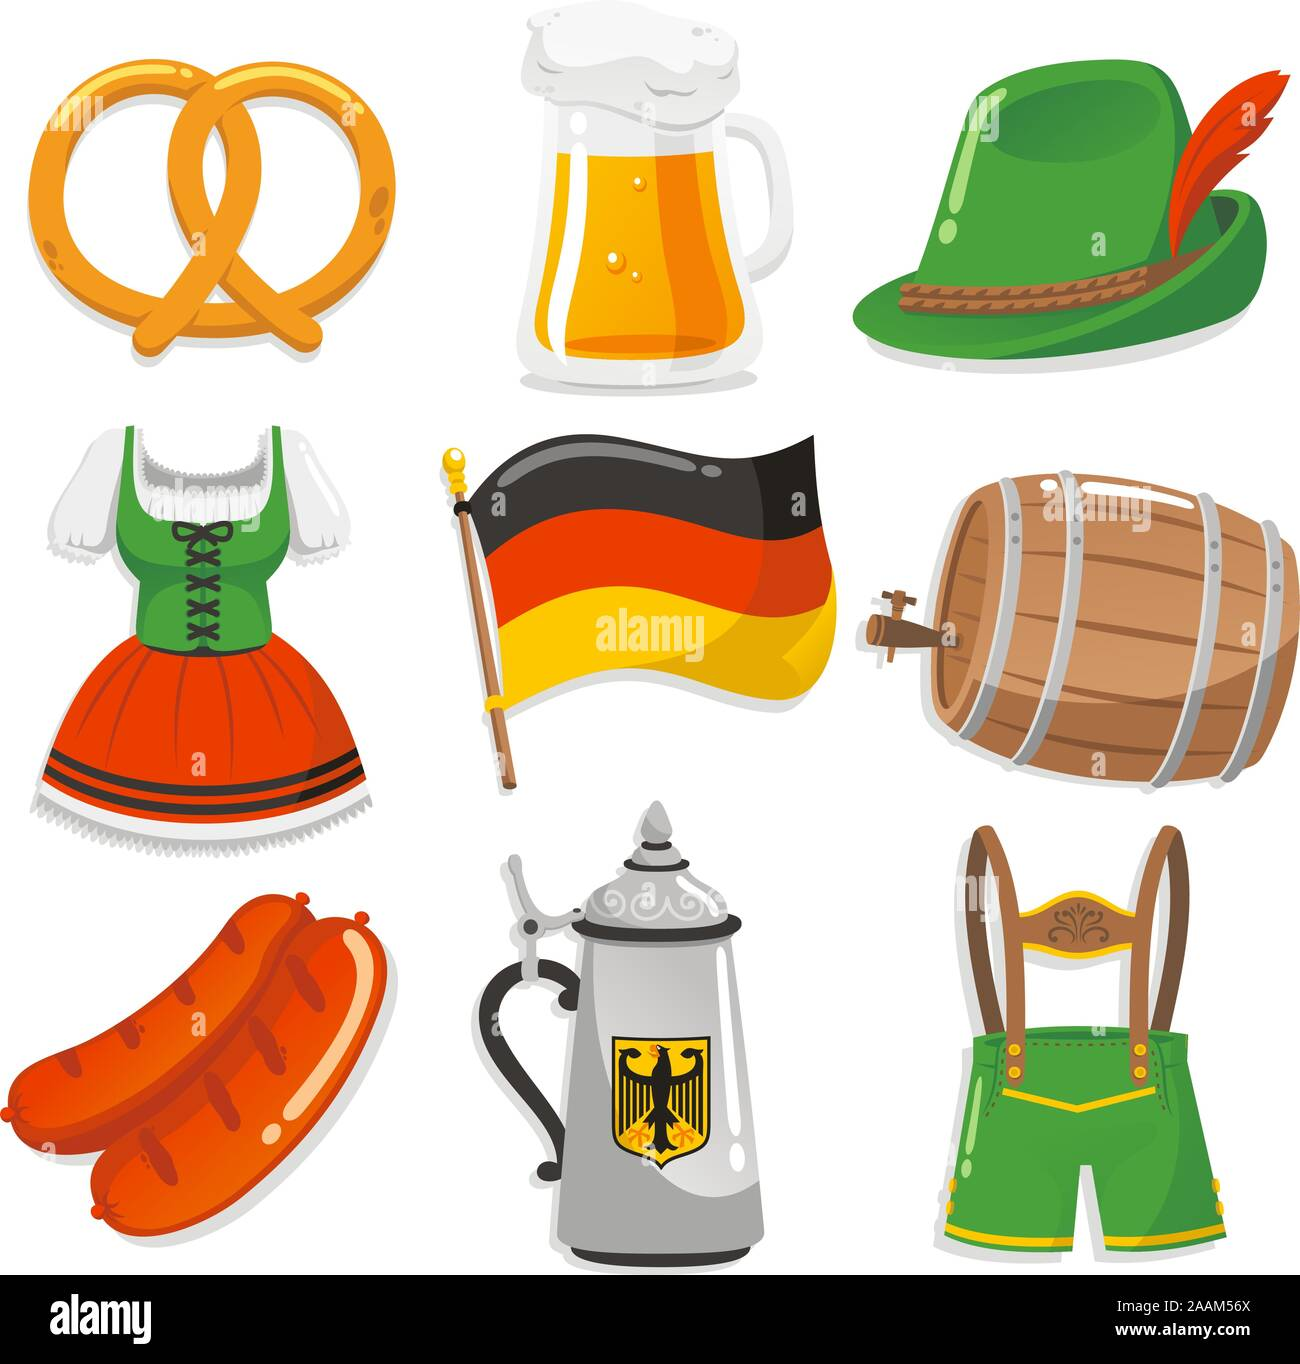 Oktoberfest Design Elements Icons, with pretzel, beer chop, Tyrollean hat with feather, Short waitress dress, German Flag, Beer barrel, sausage, waiter - Stock Photo